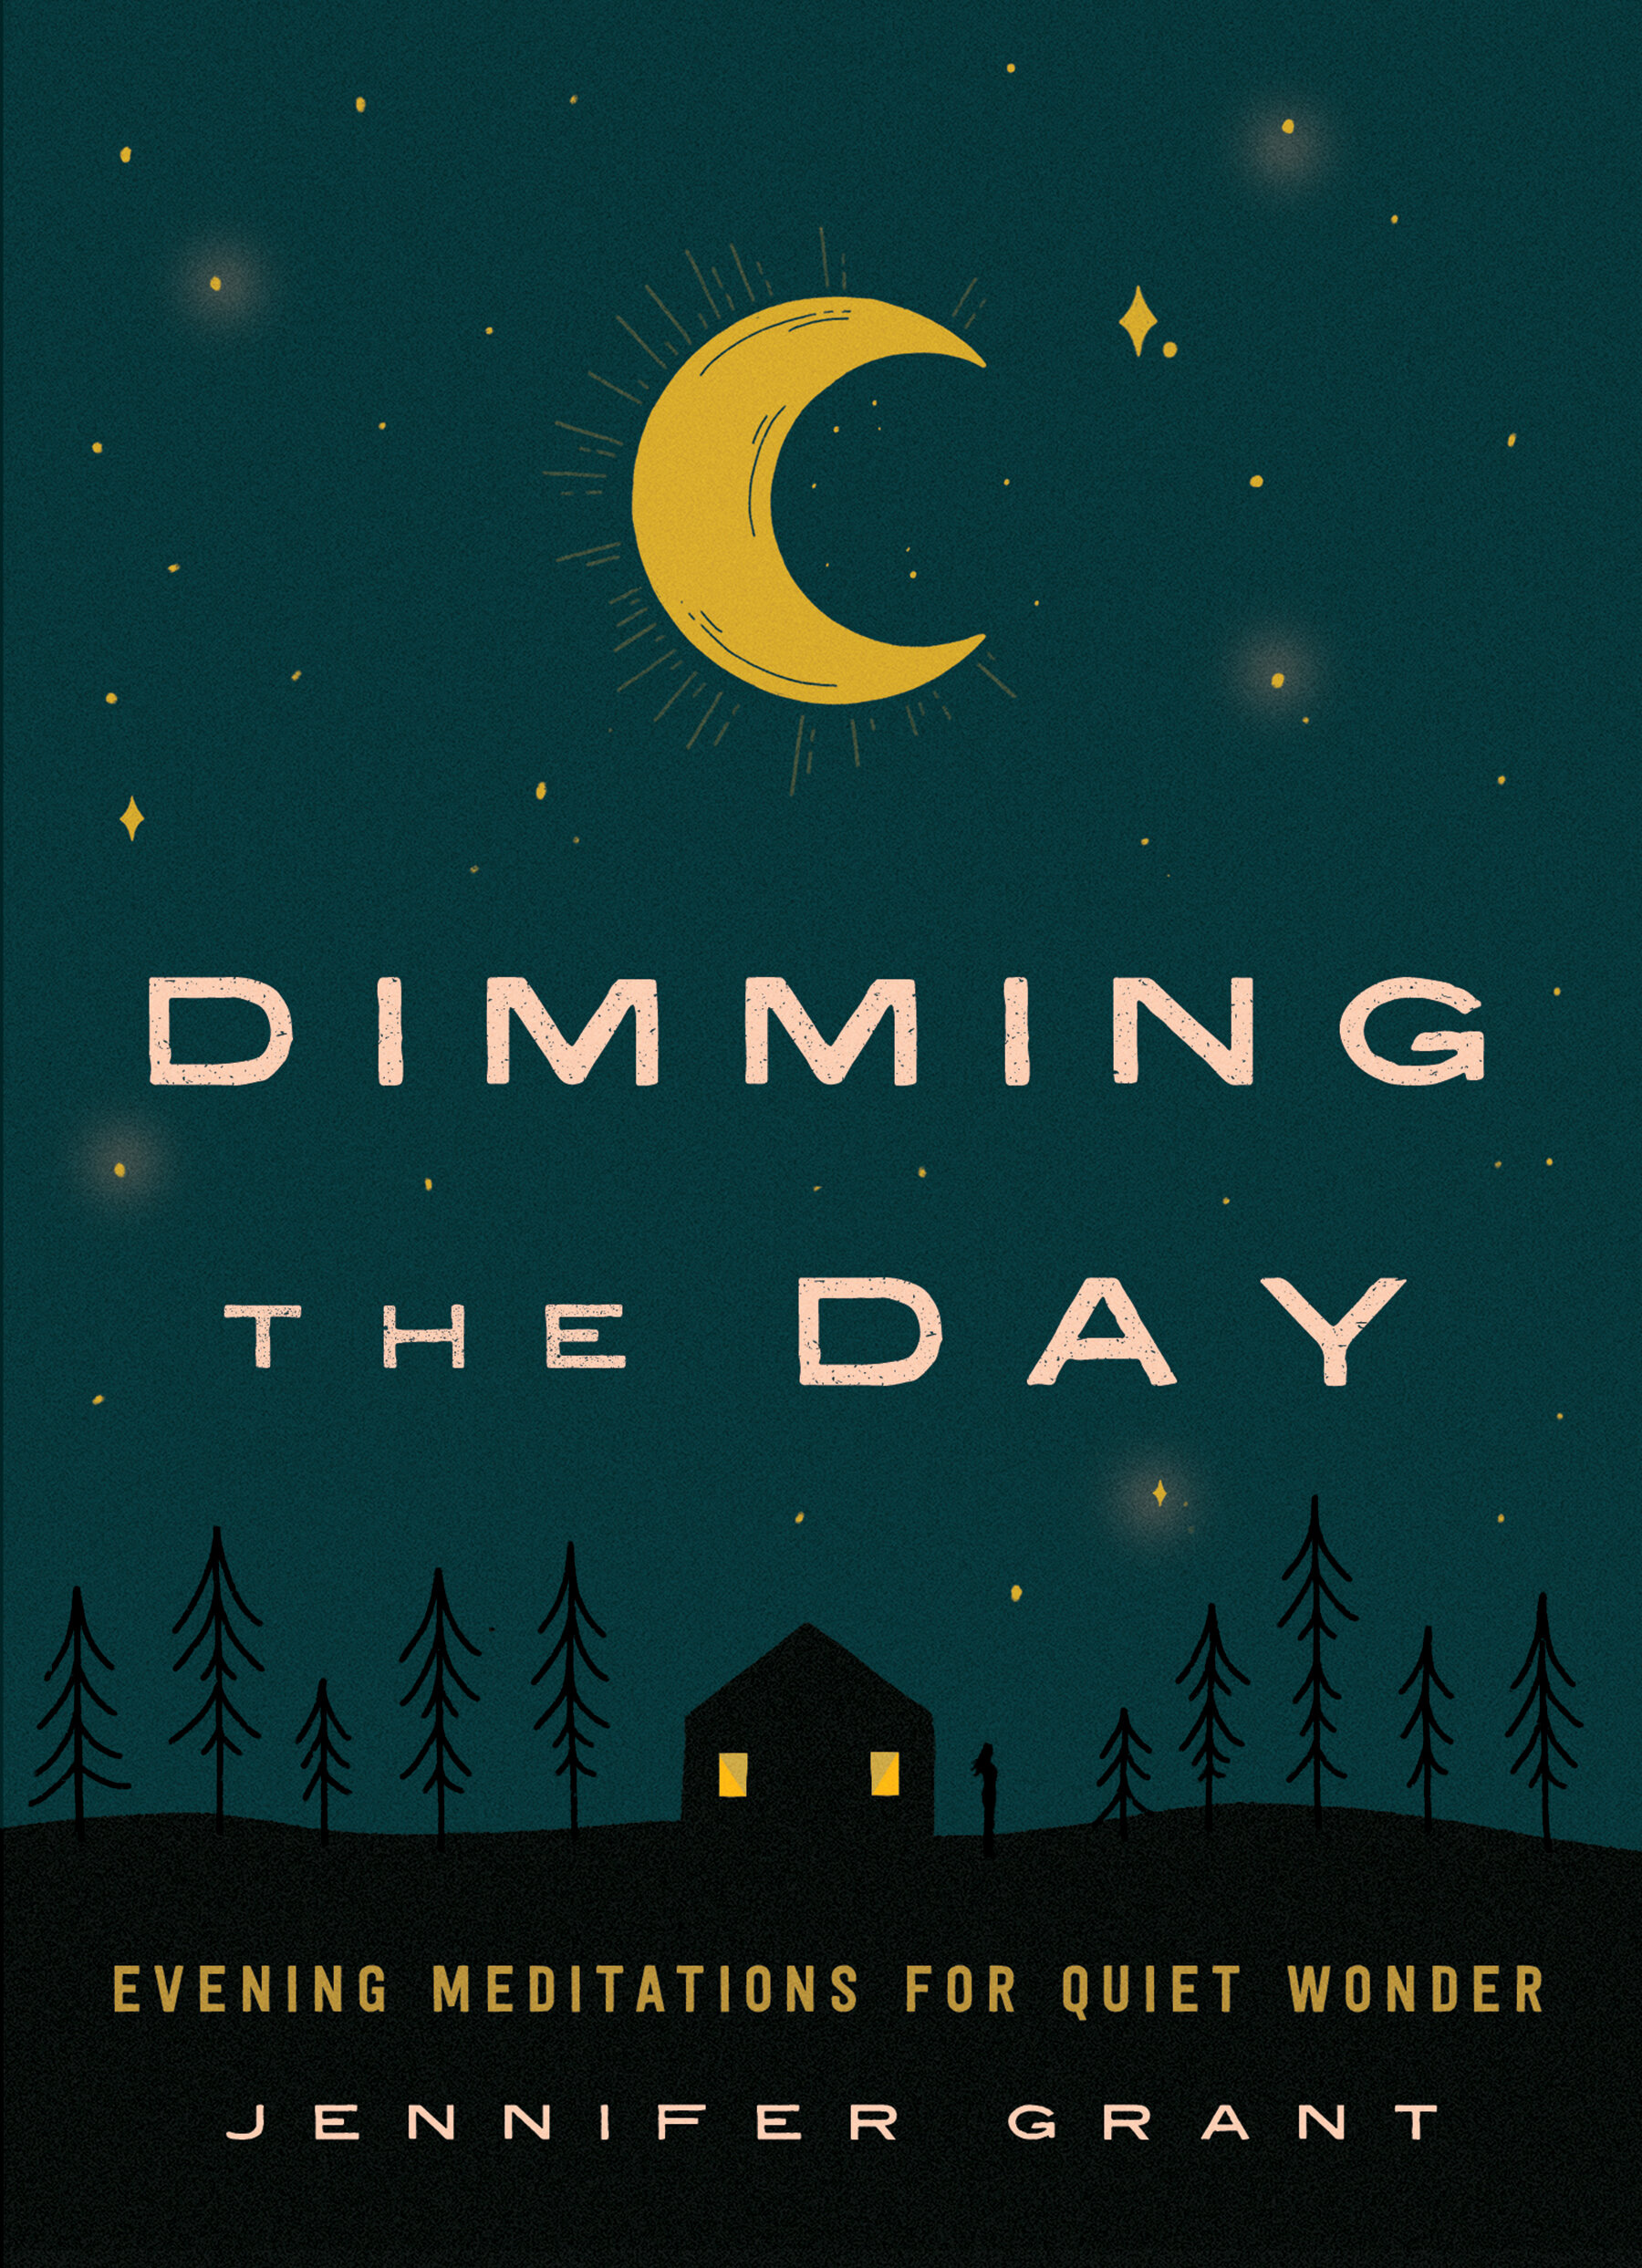 Dimming the Day: Evening Meditations for Quiet Wonder